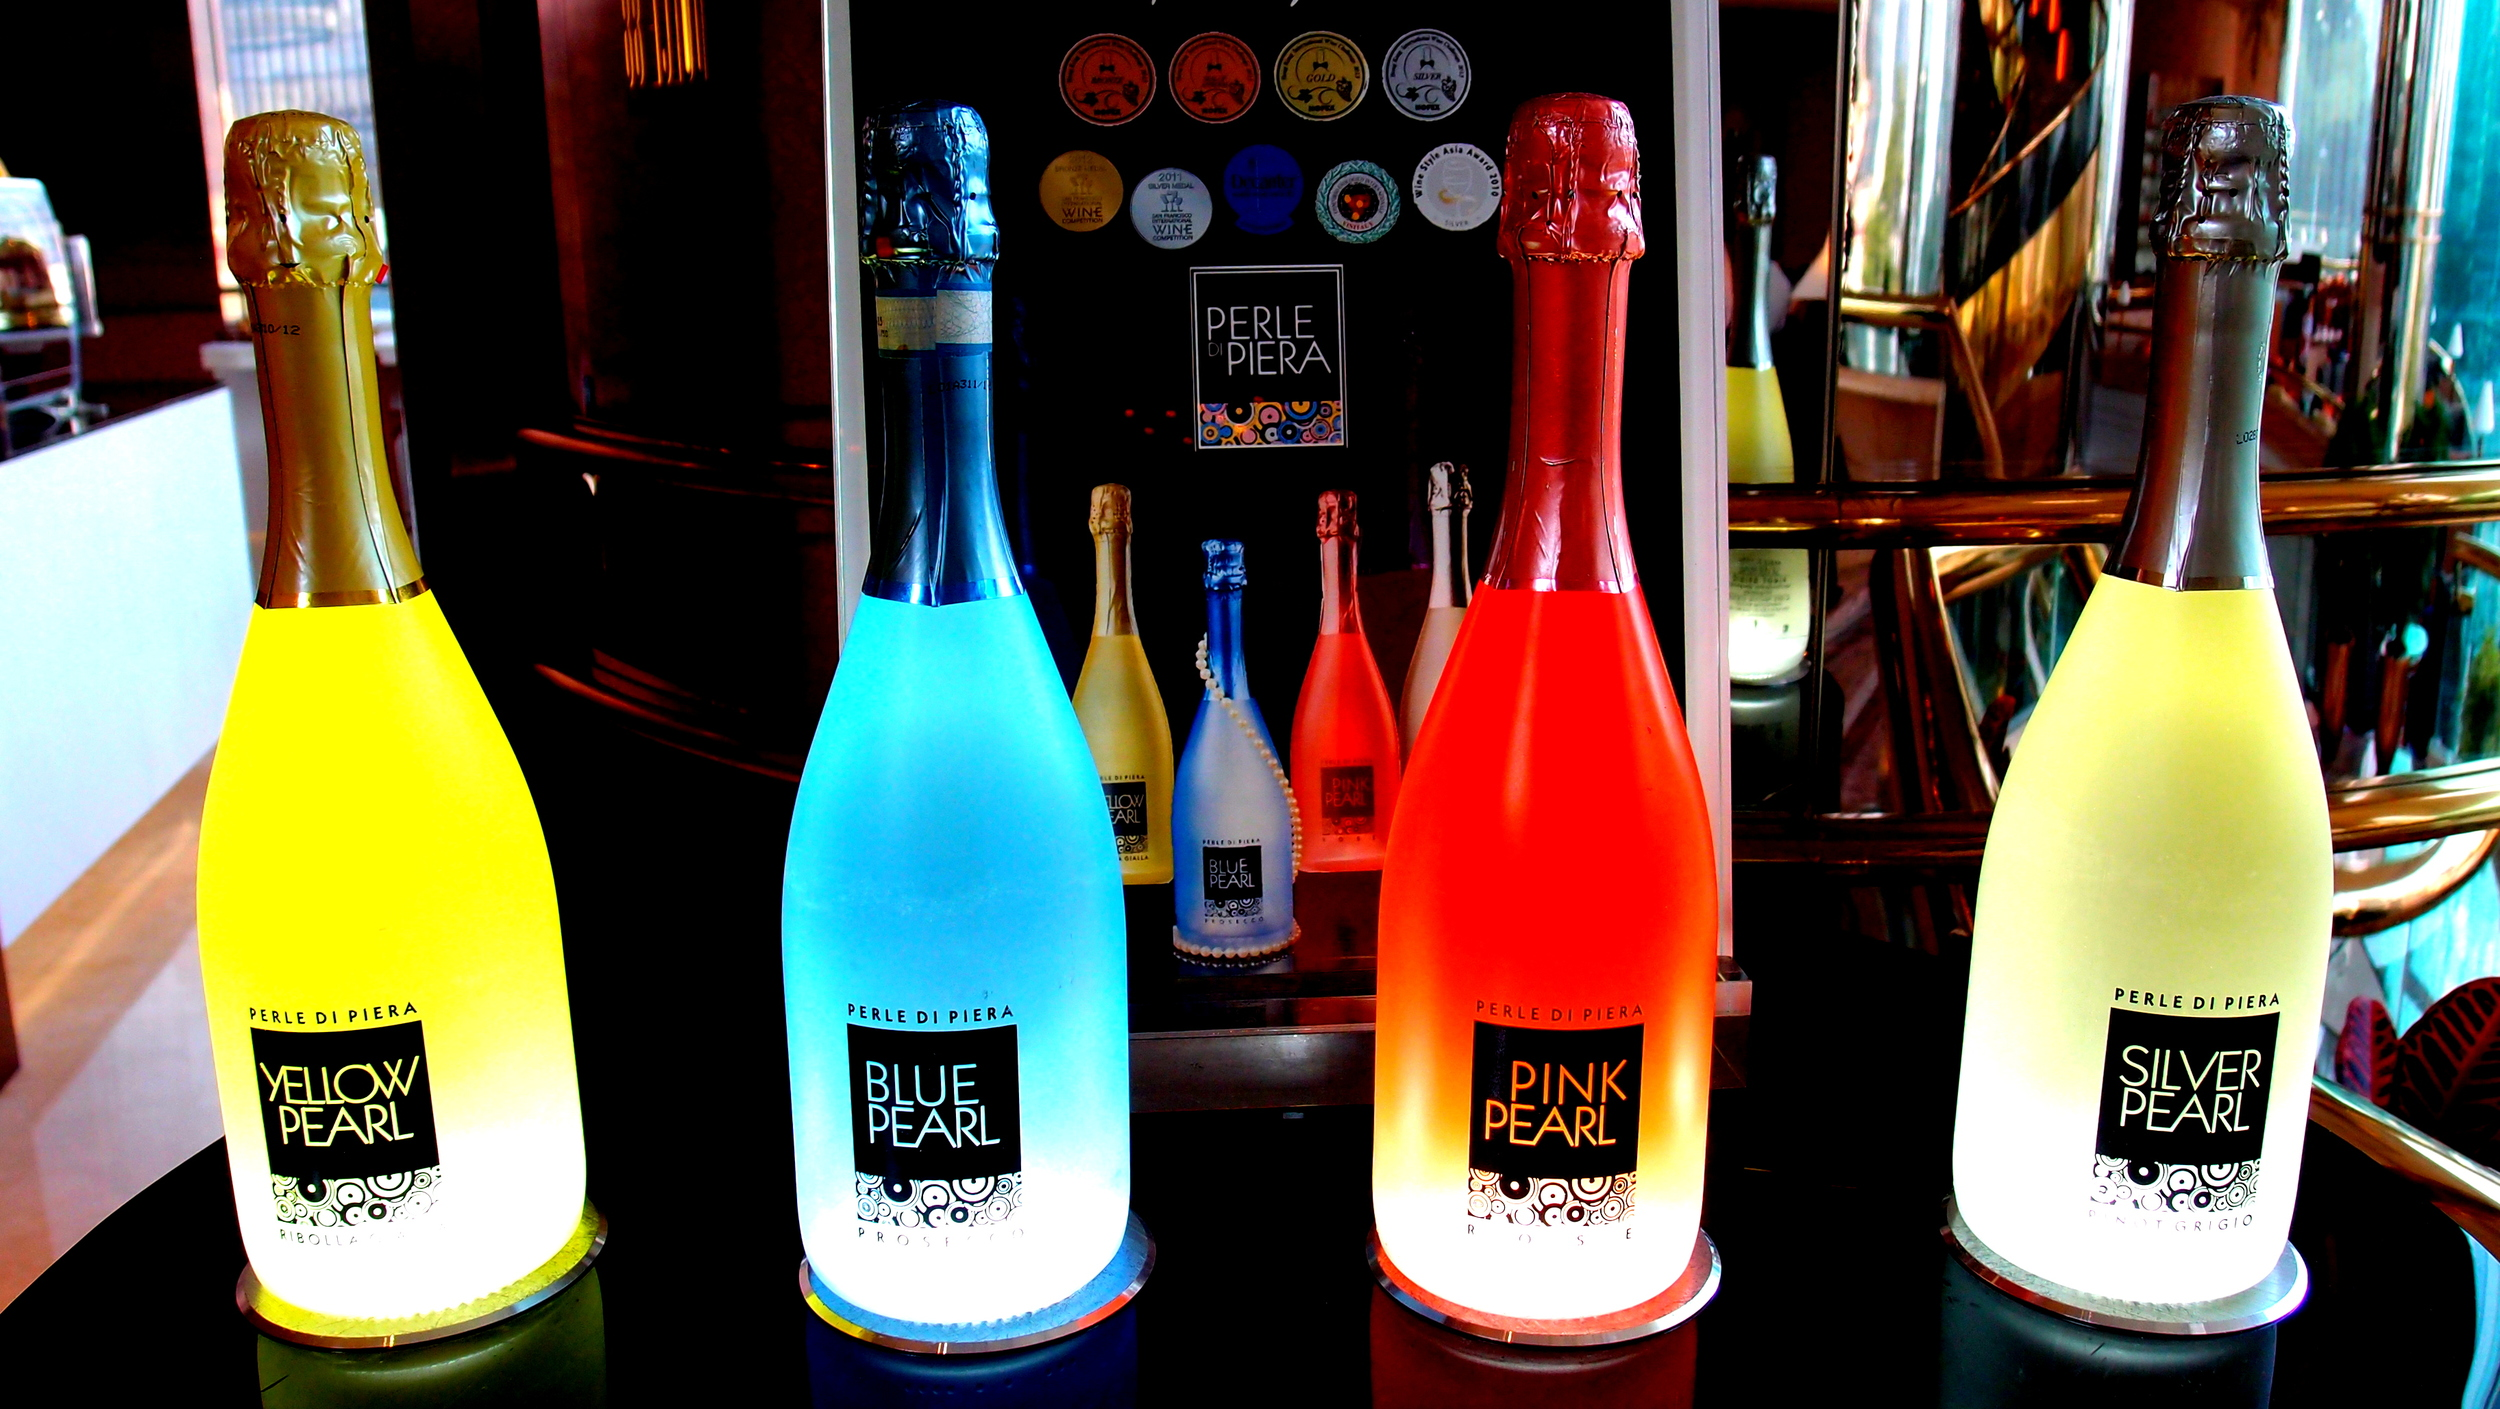 Bottles of stuff that presumably give you a hangover in glorious colour.